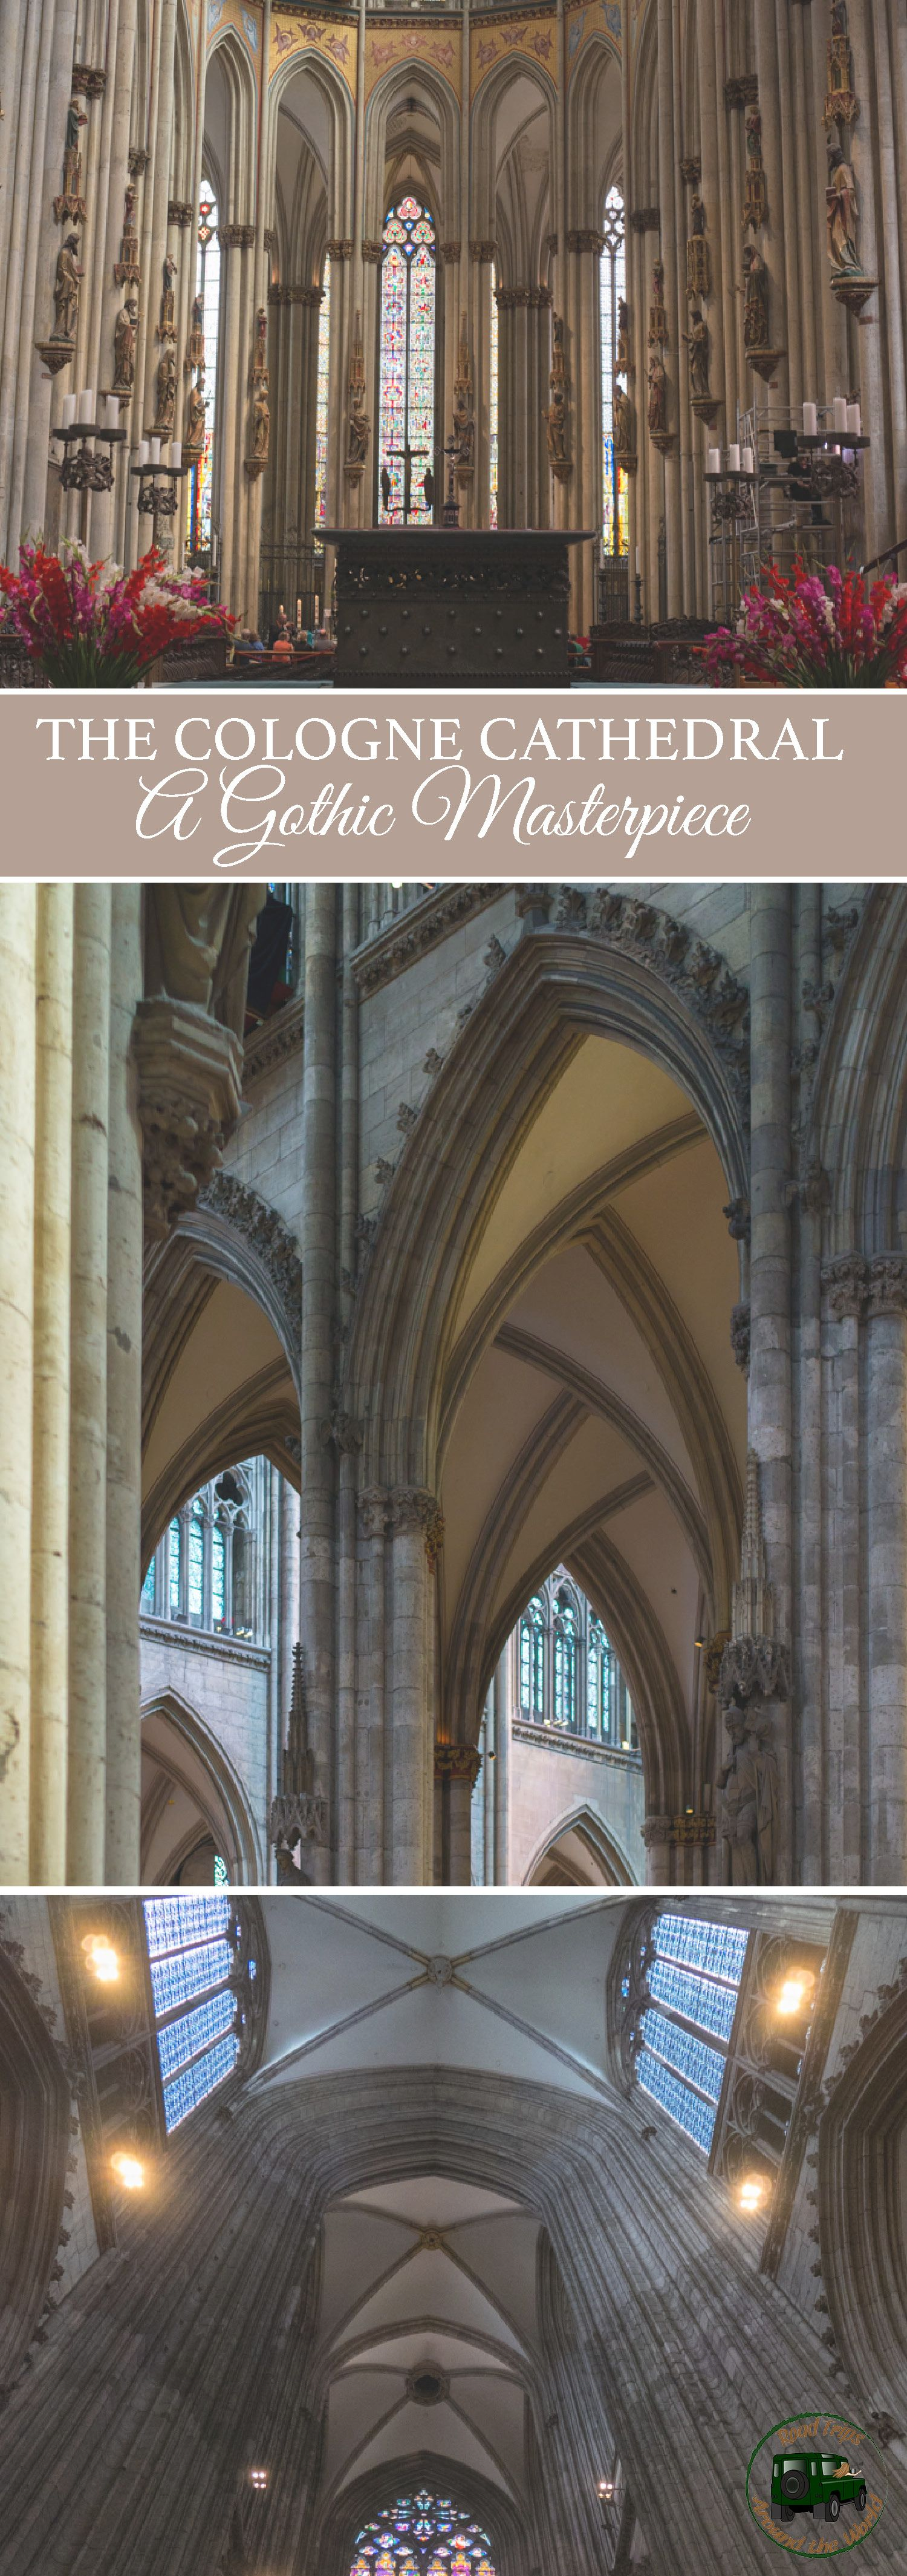 visit of the cologne cathedral a gothic masterpiece